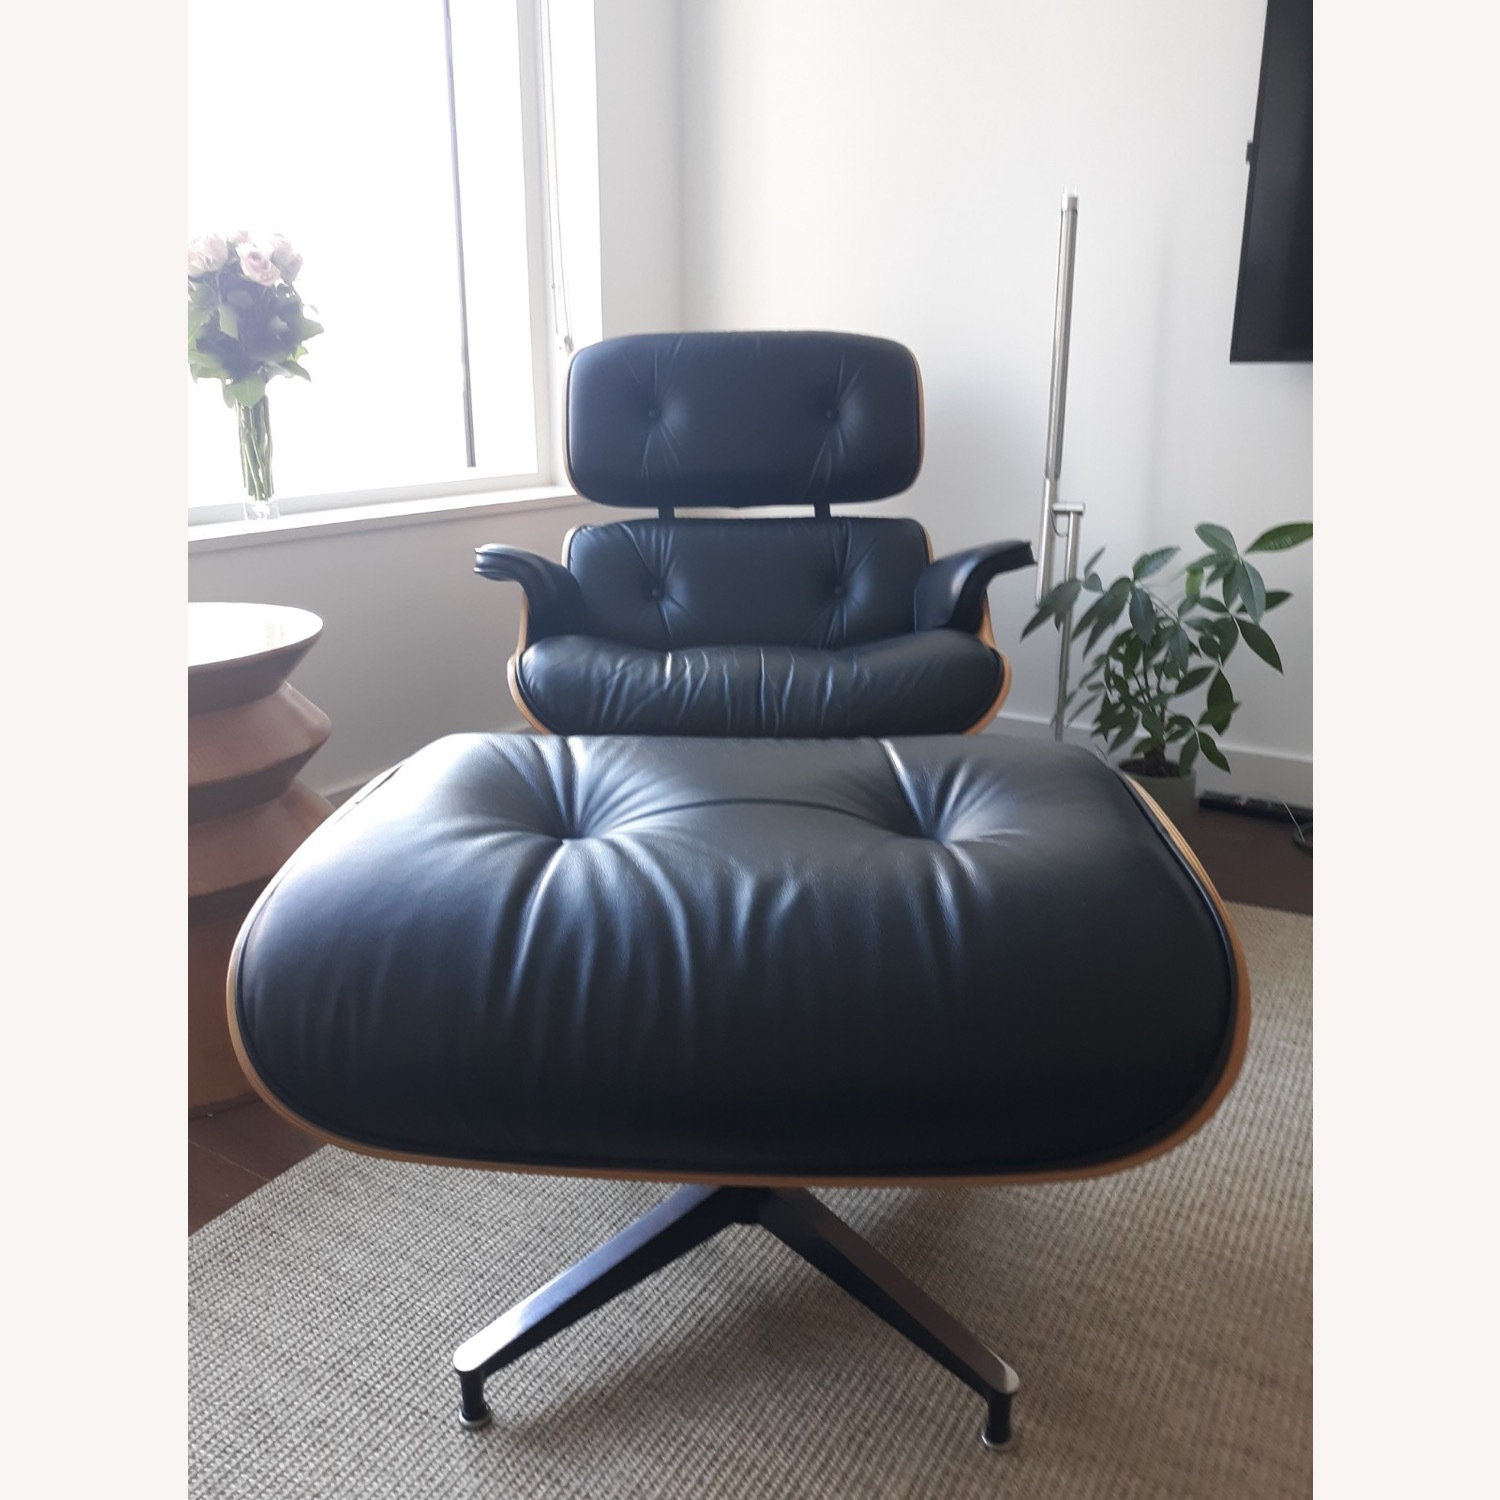 Herman Miller Eames Lounge Chair and Ottoman - image-25